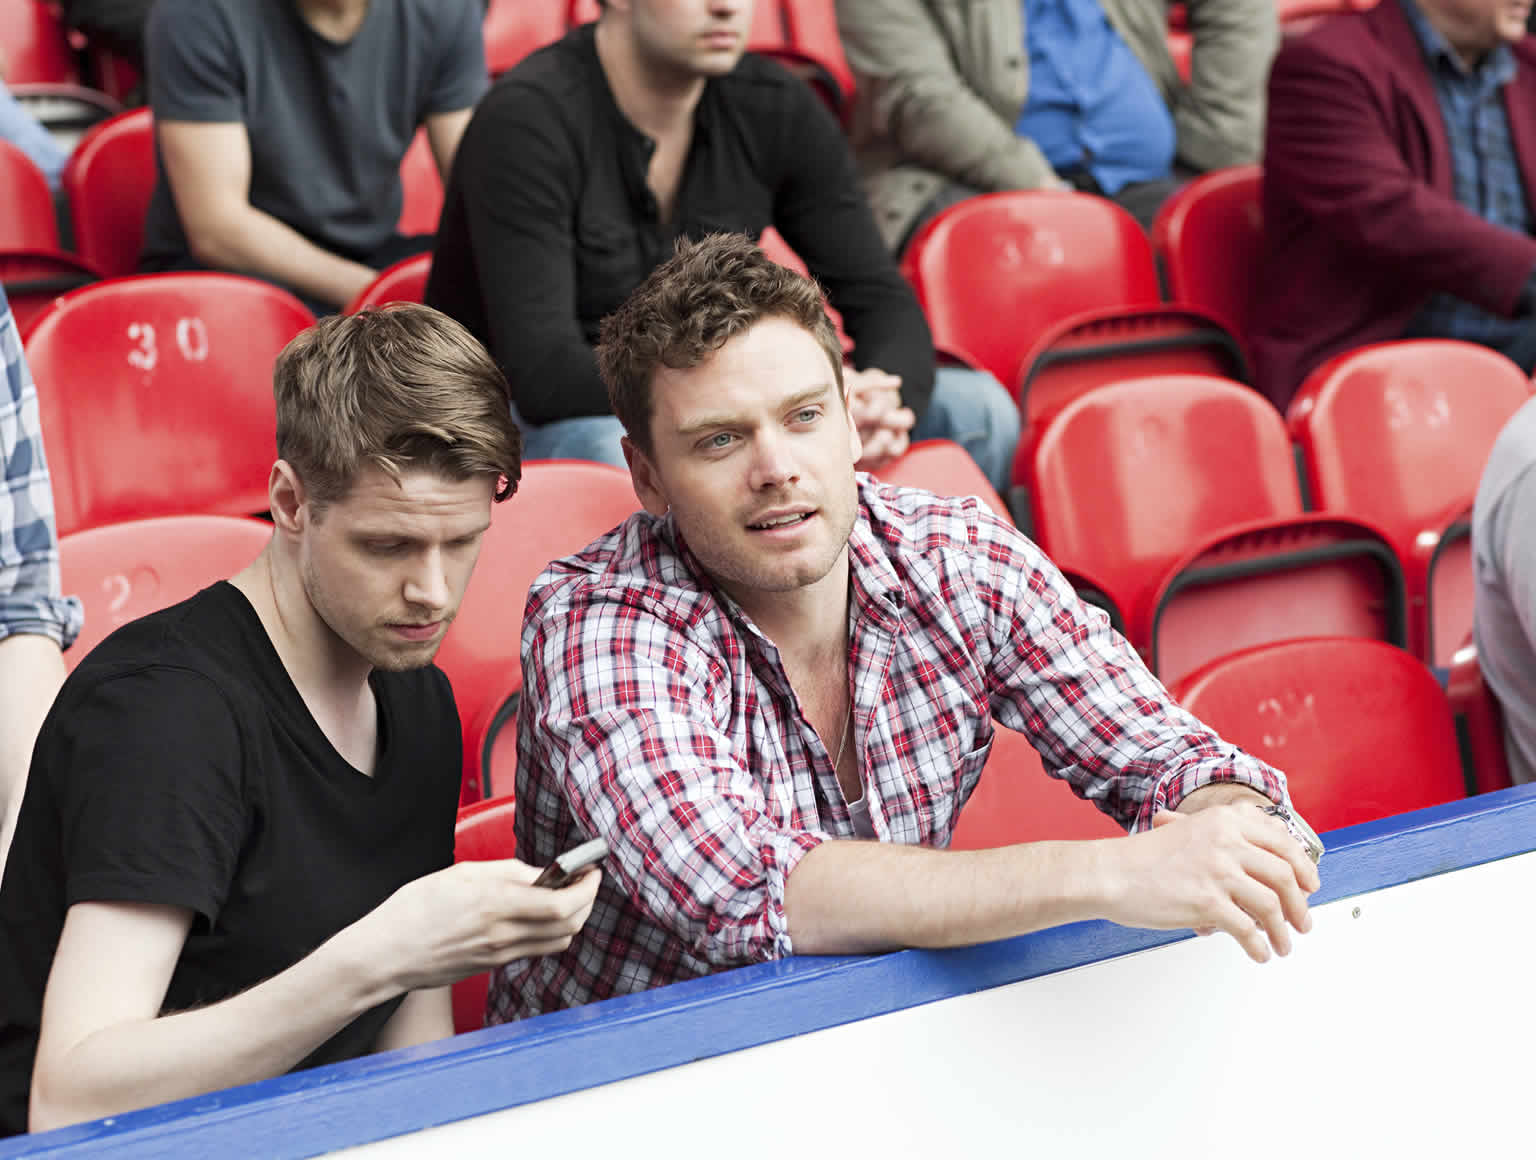 Two young guys on outside seating in a sports stadium, one watching game and the other looking at his mobile phone.